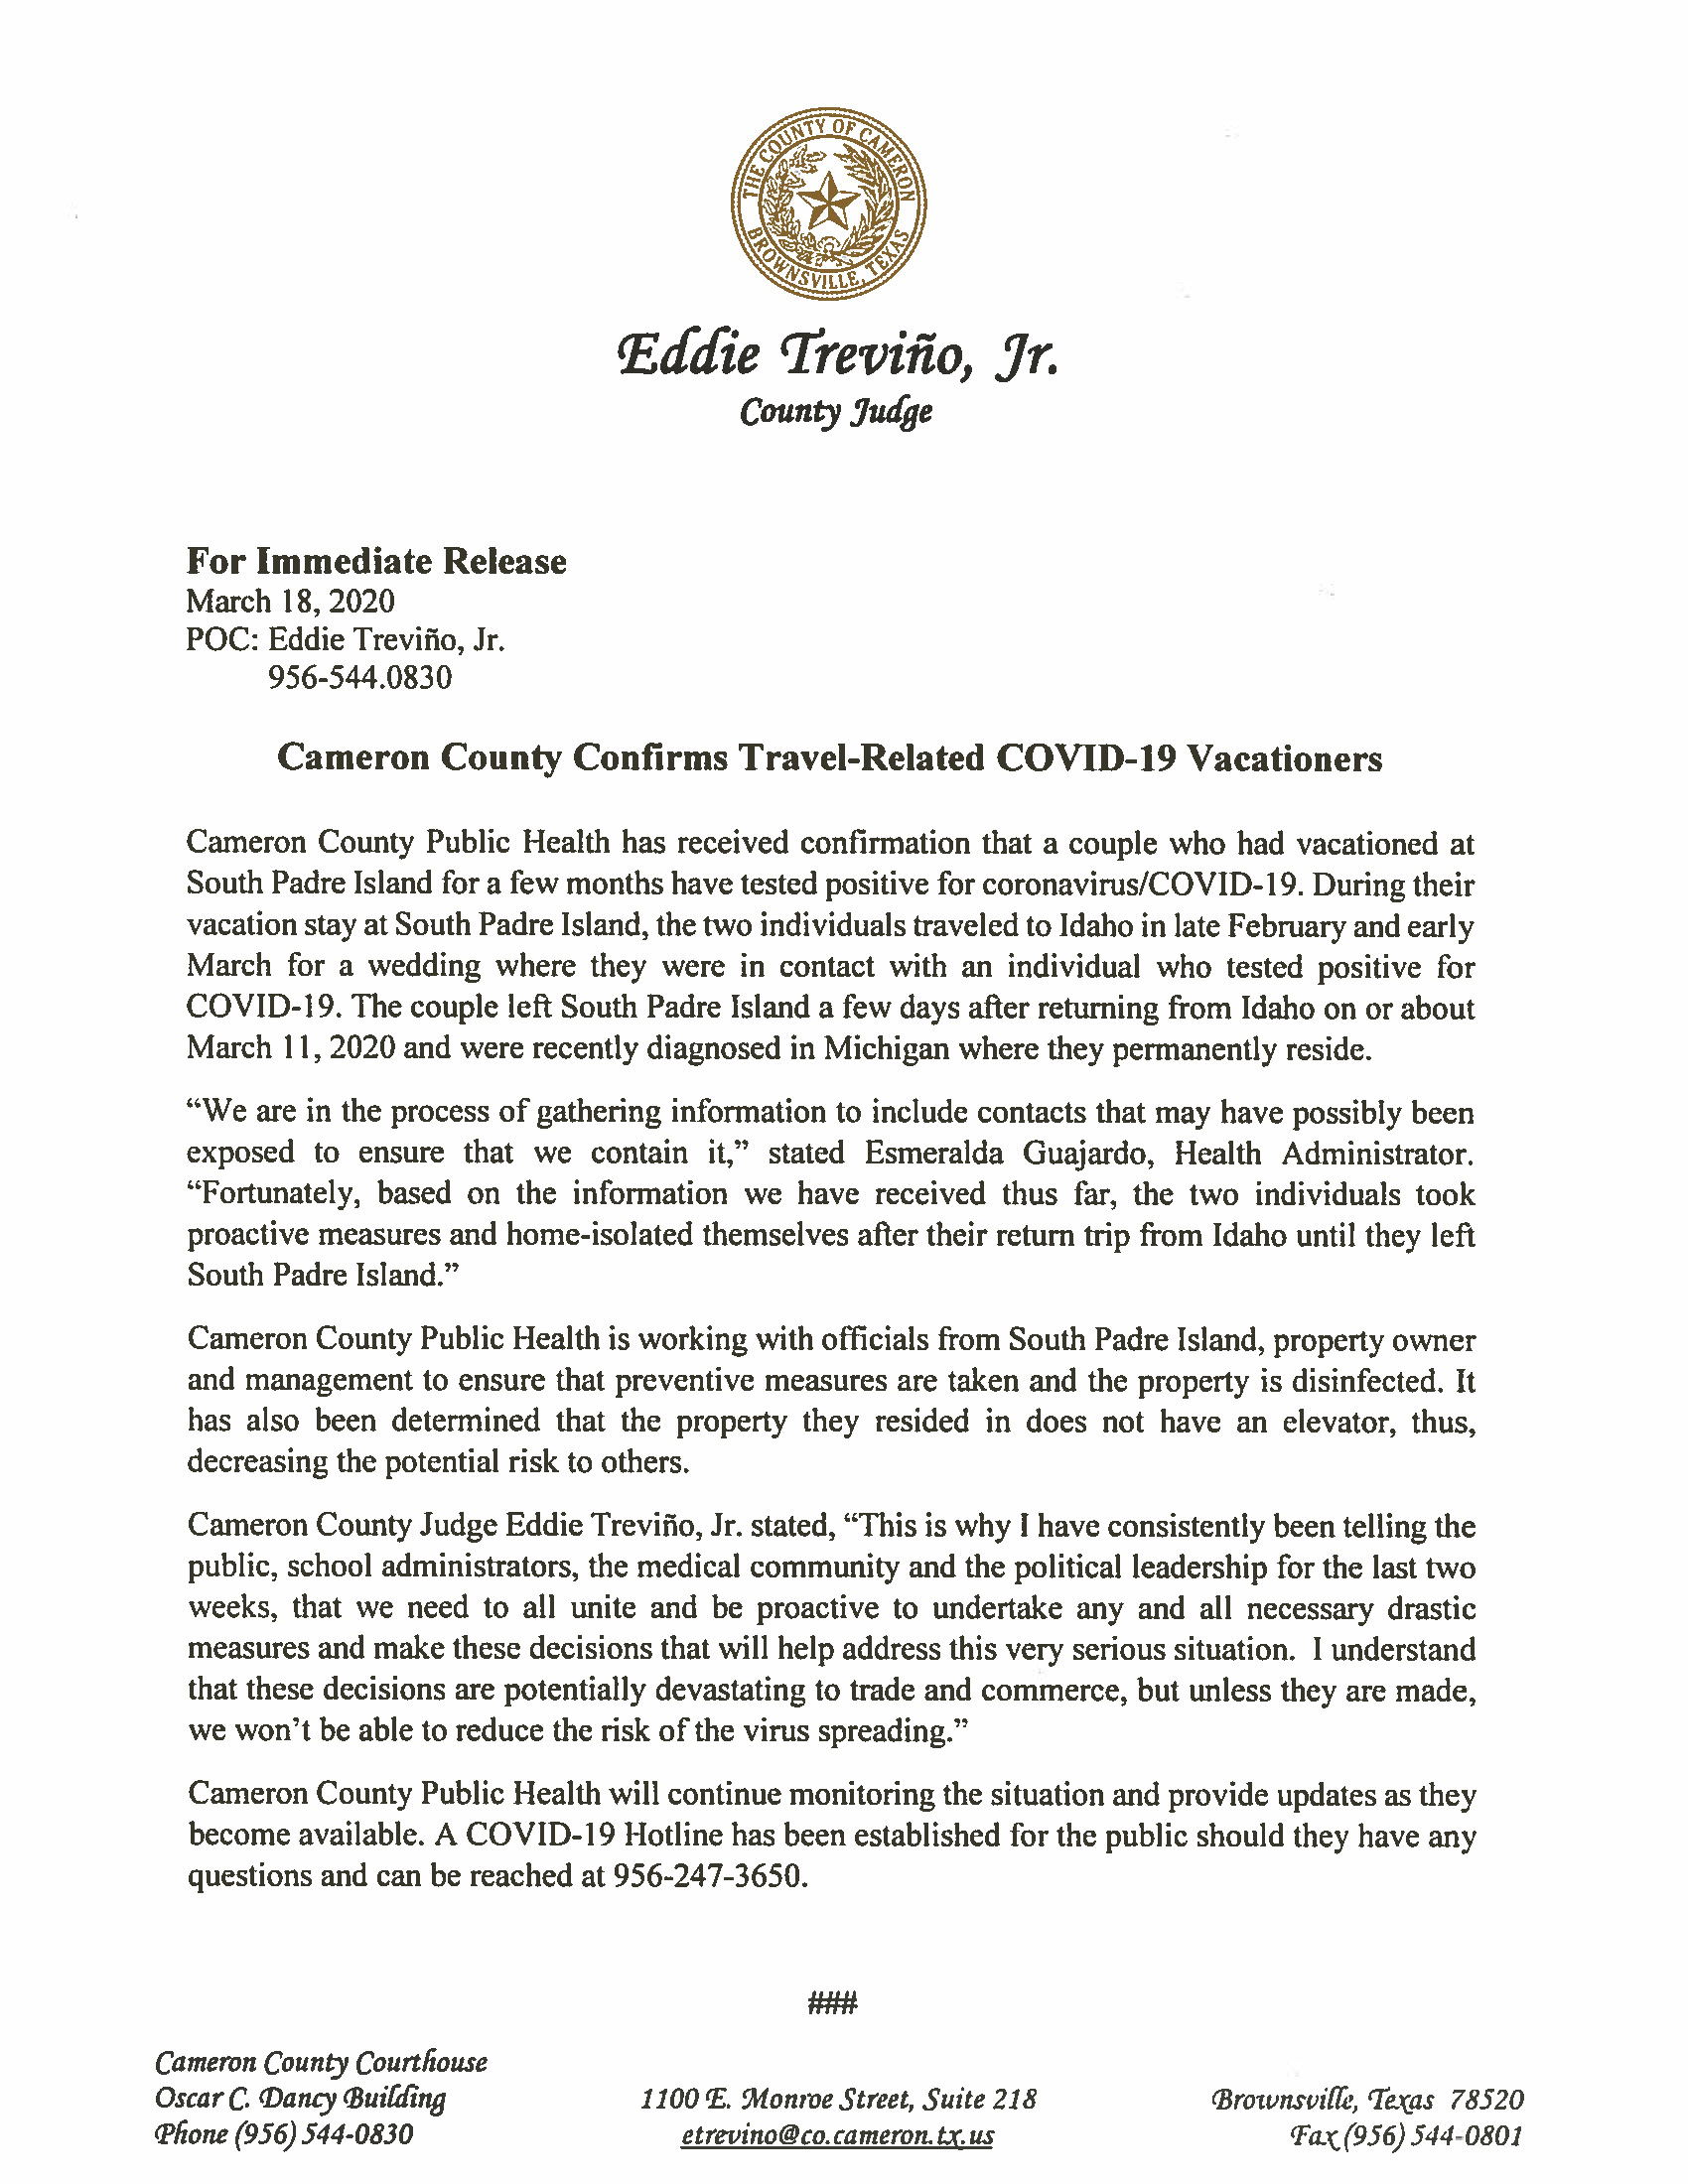 03 18 2020 Press Release Cameron County Confirms Travel Related COVID 19 Vacationers